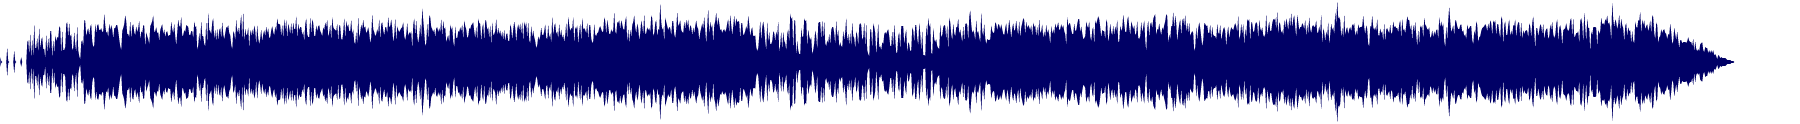 waveform of track #73126